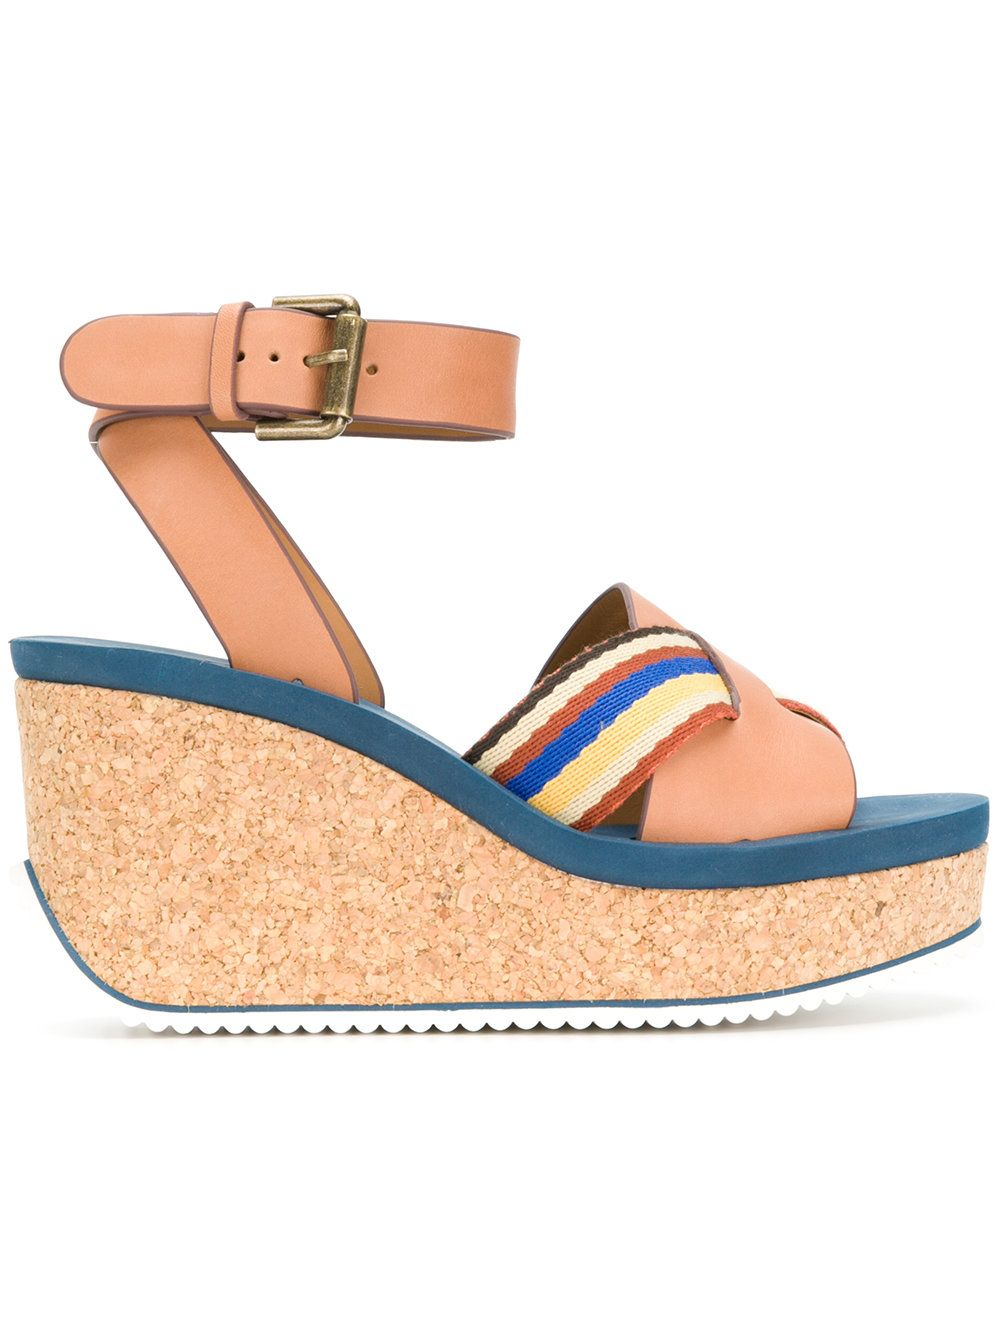 cd7f05fc9b28 See By Chloé striped crossover wedge sandals